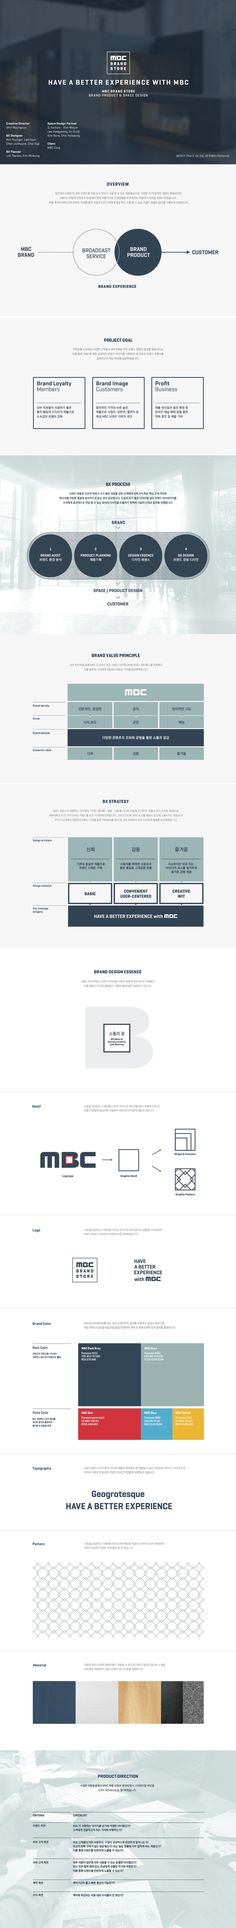 Ppt 디자인 템플릿 Interior Design how much does an interior designer cost Ppt Design, Ppt Template Design, Diagram Design, Brochure Design, Logo Design, Layout Design, Portfolio Layout, Portfolio Design, Interior Designer Cost